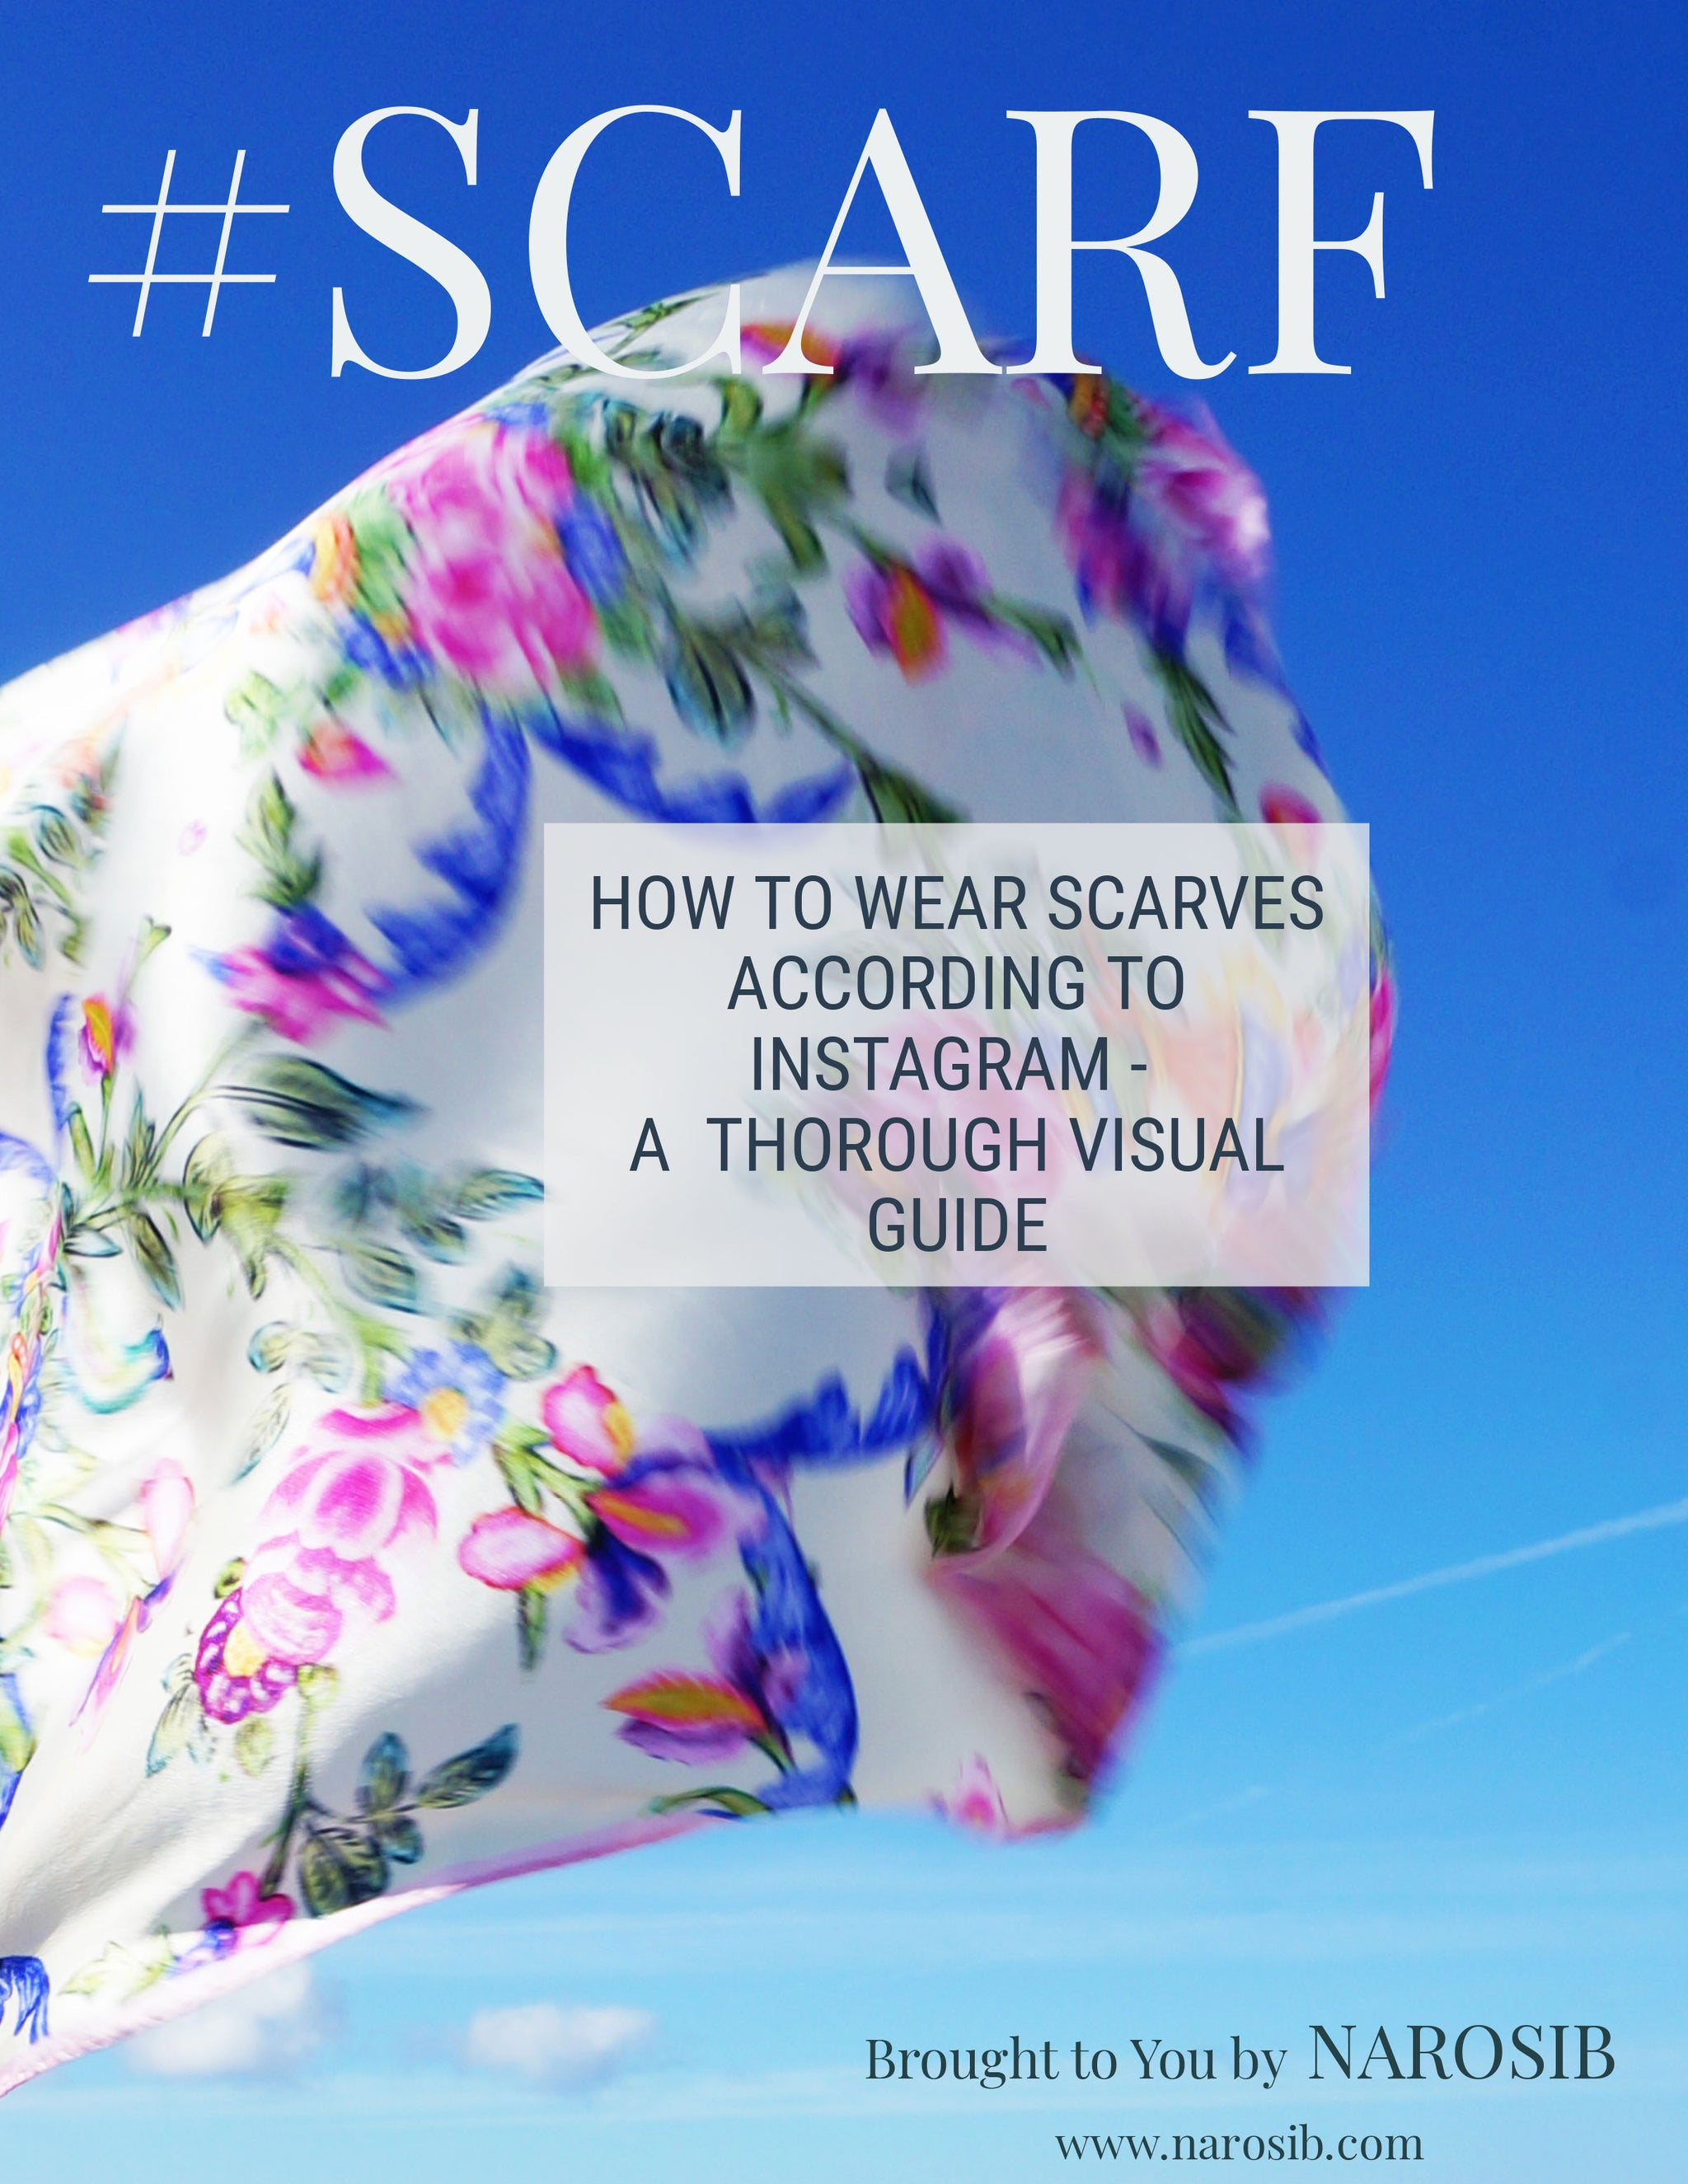 Ebook : #SCARF ,How to wear scarves according to Instagram- Narosib Switzerland- Made in Italy